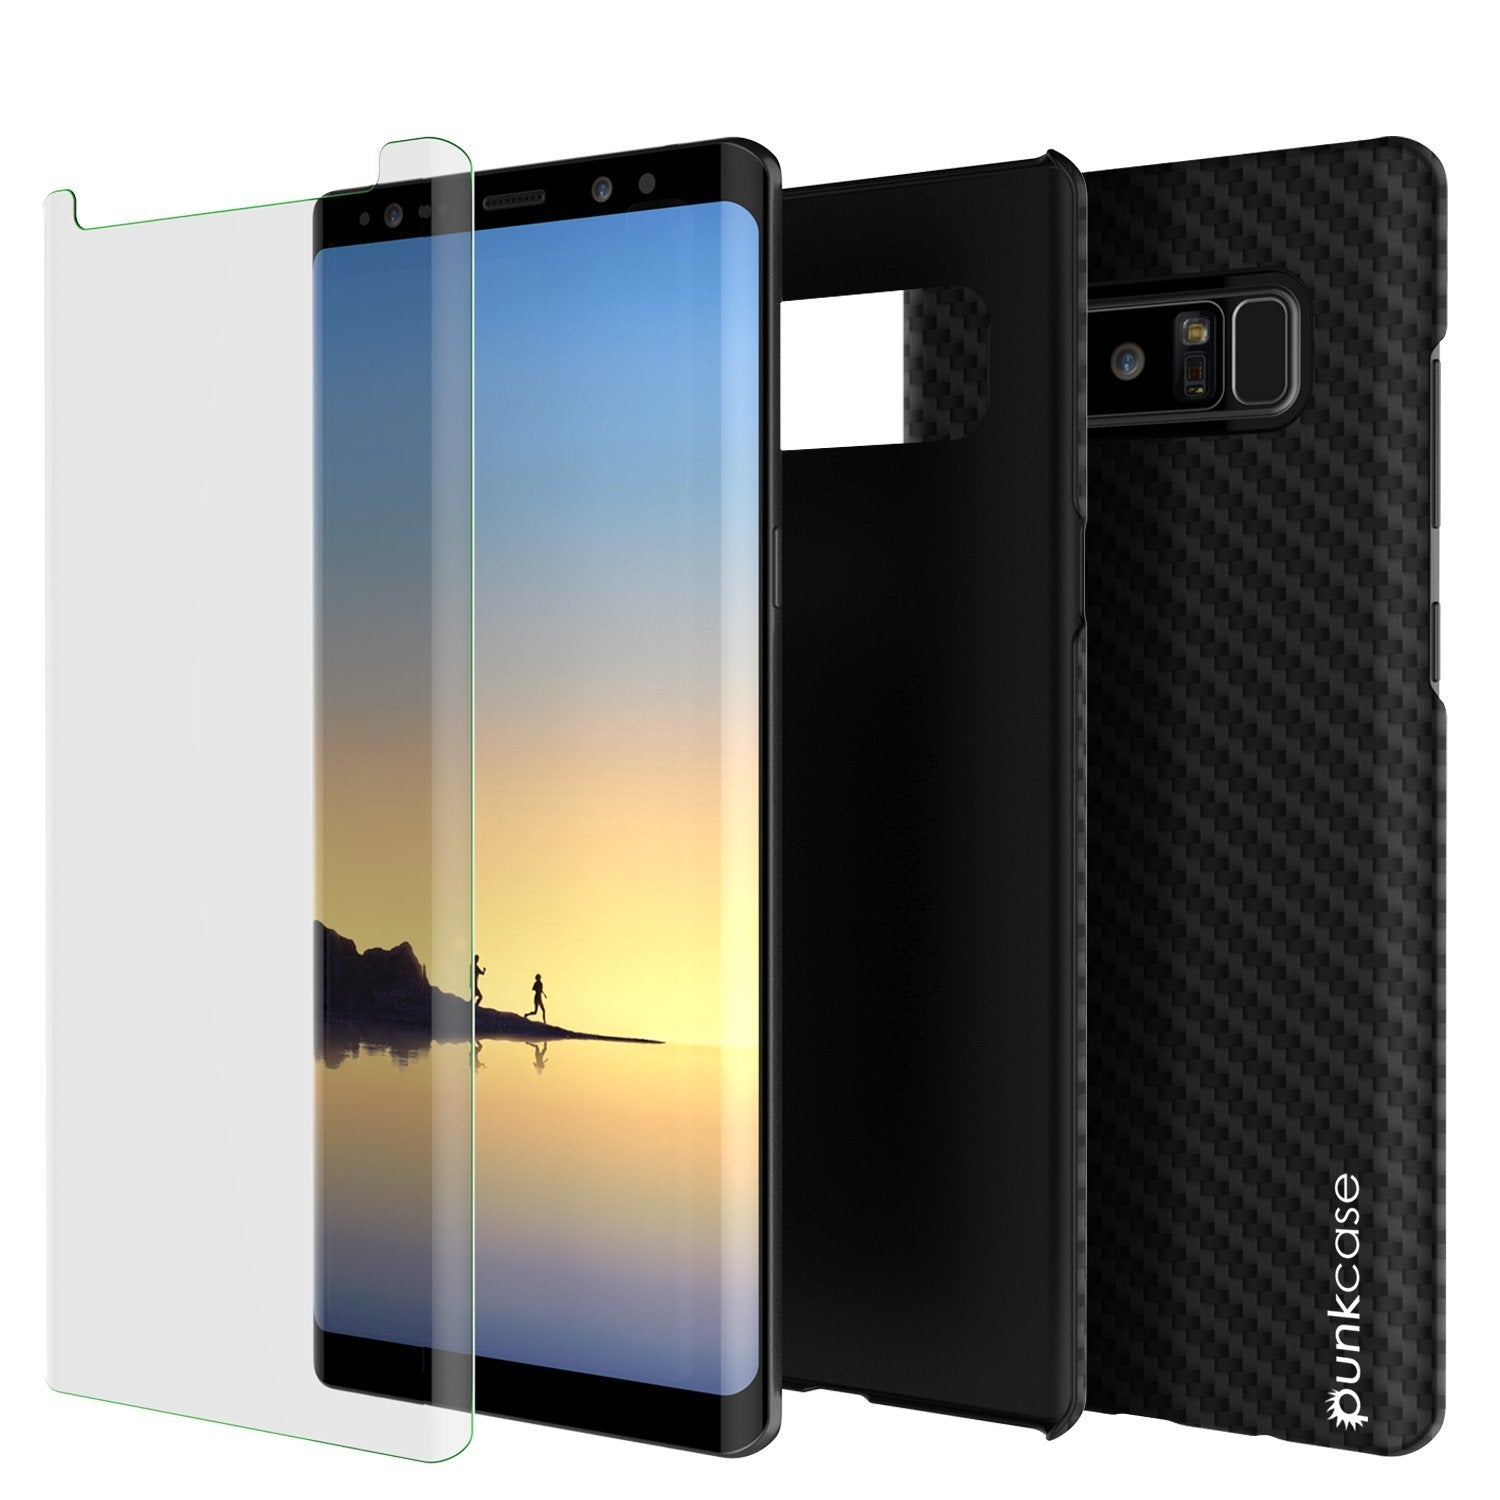 Galaxy Note 8 Case, Punkcase CarbonShield, Heavy Duty & Ultra Thin 2 Piece Dual Layer PU Leather Cover [shockproof] with Screen Protector [jet black]